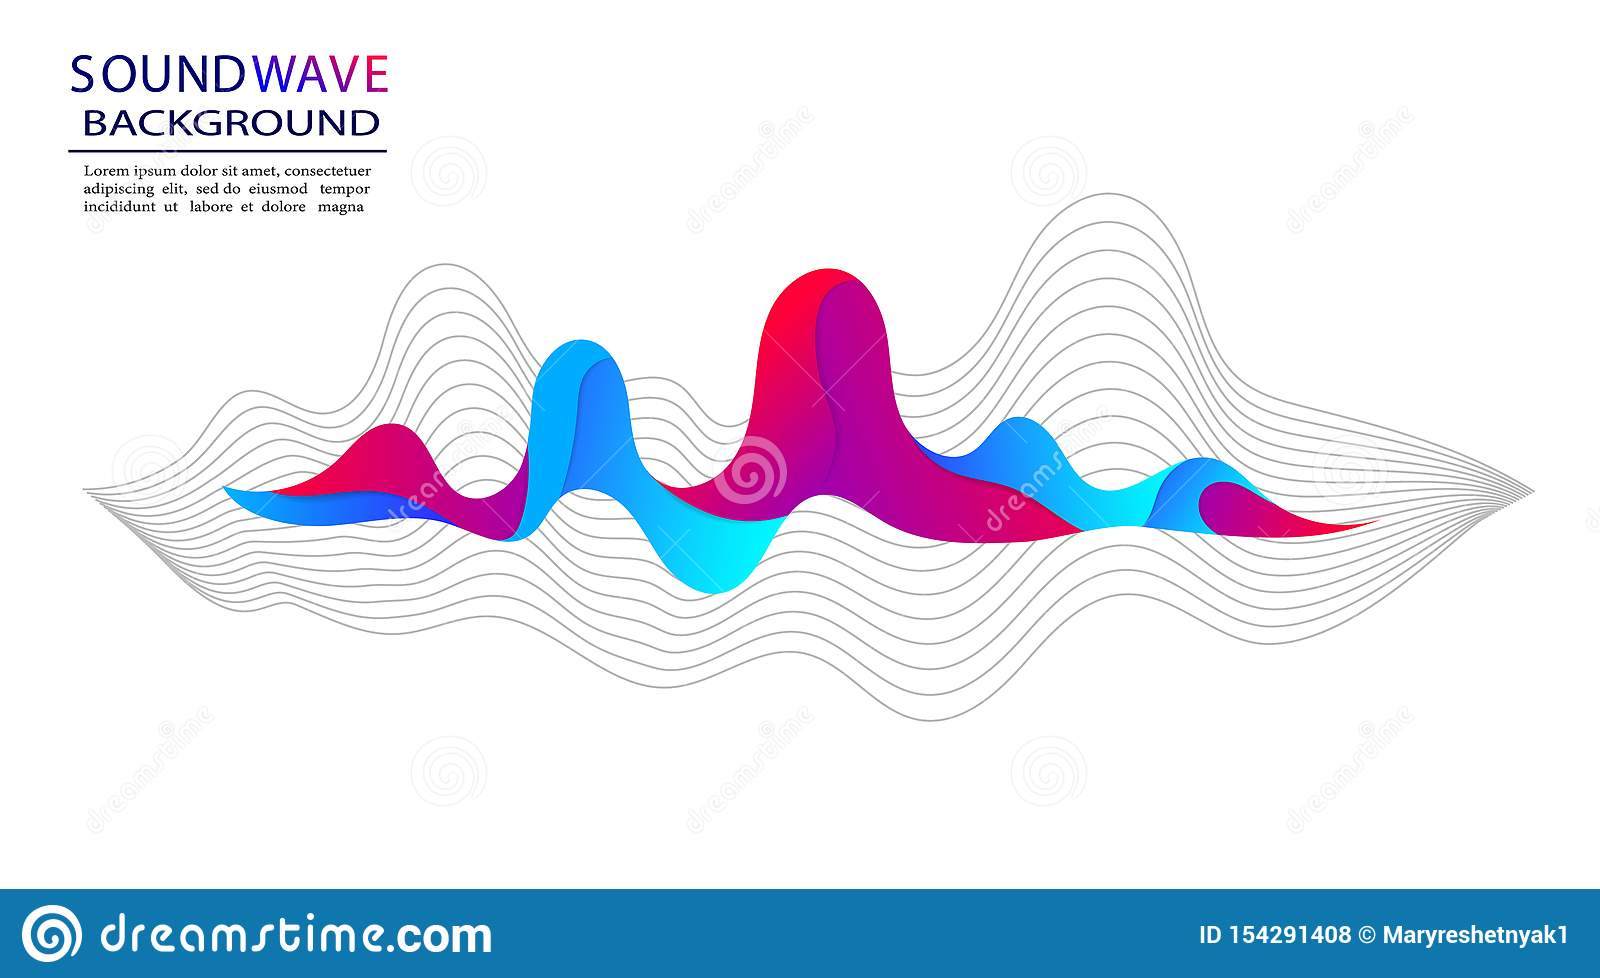 Musical soundwave on isloated background. Abstract sound wave and form of pulse for radio, audio. Trendy background with soundwave